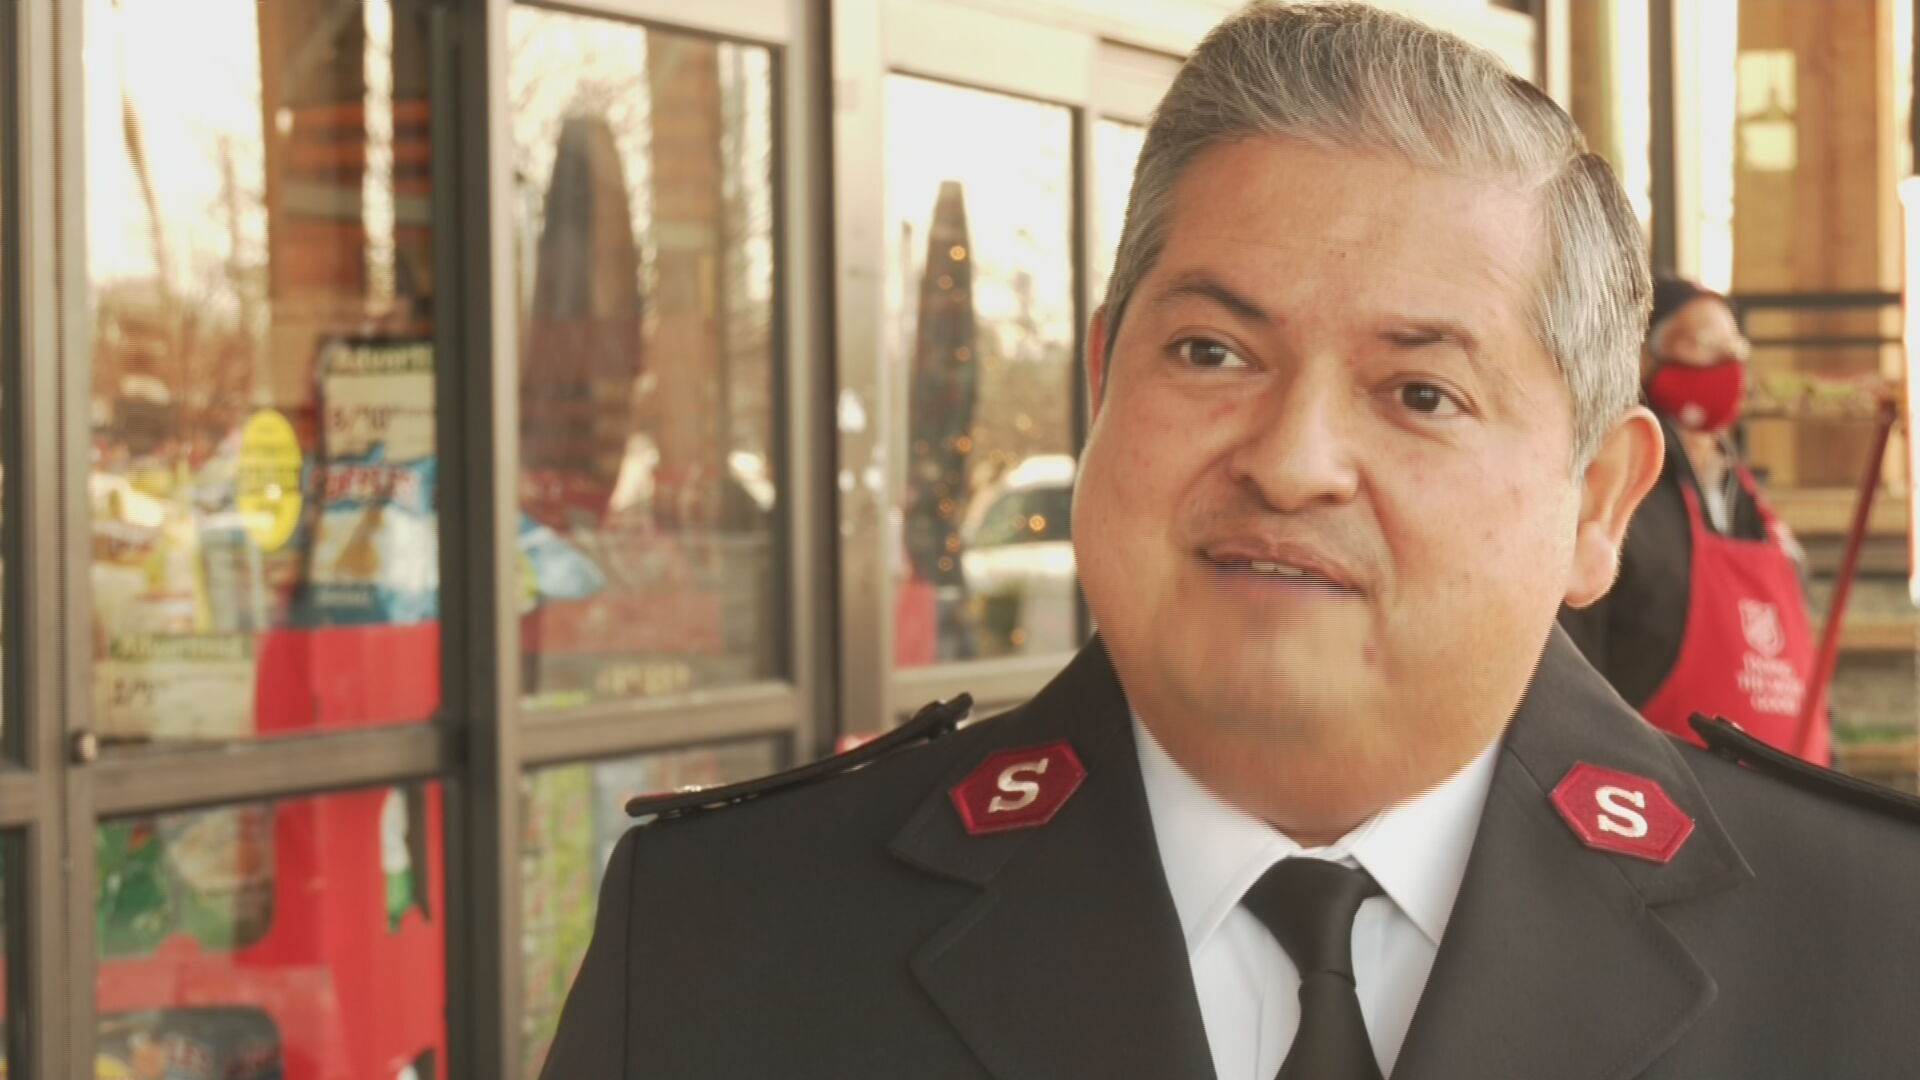 Salvation Army's Red Kettle Campaign Seeing Donation Shortfall